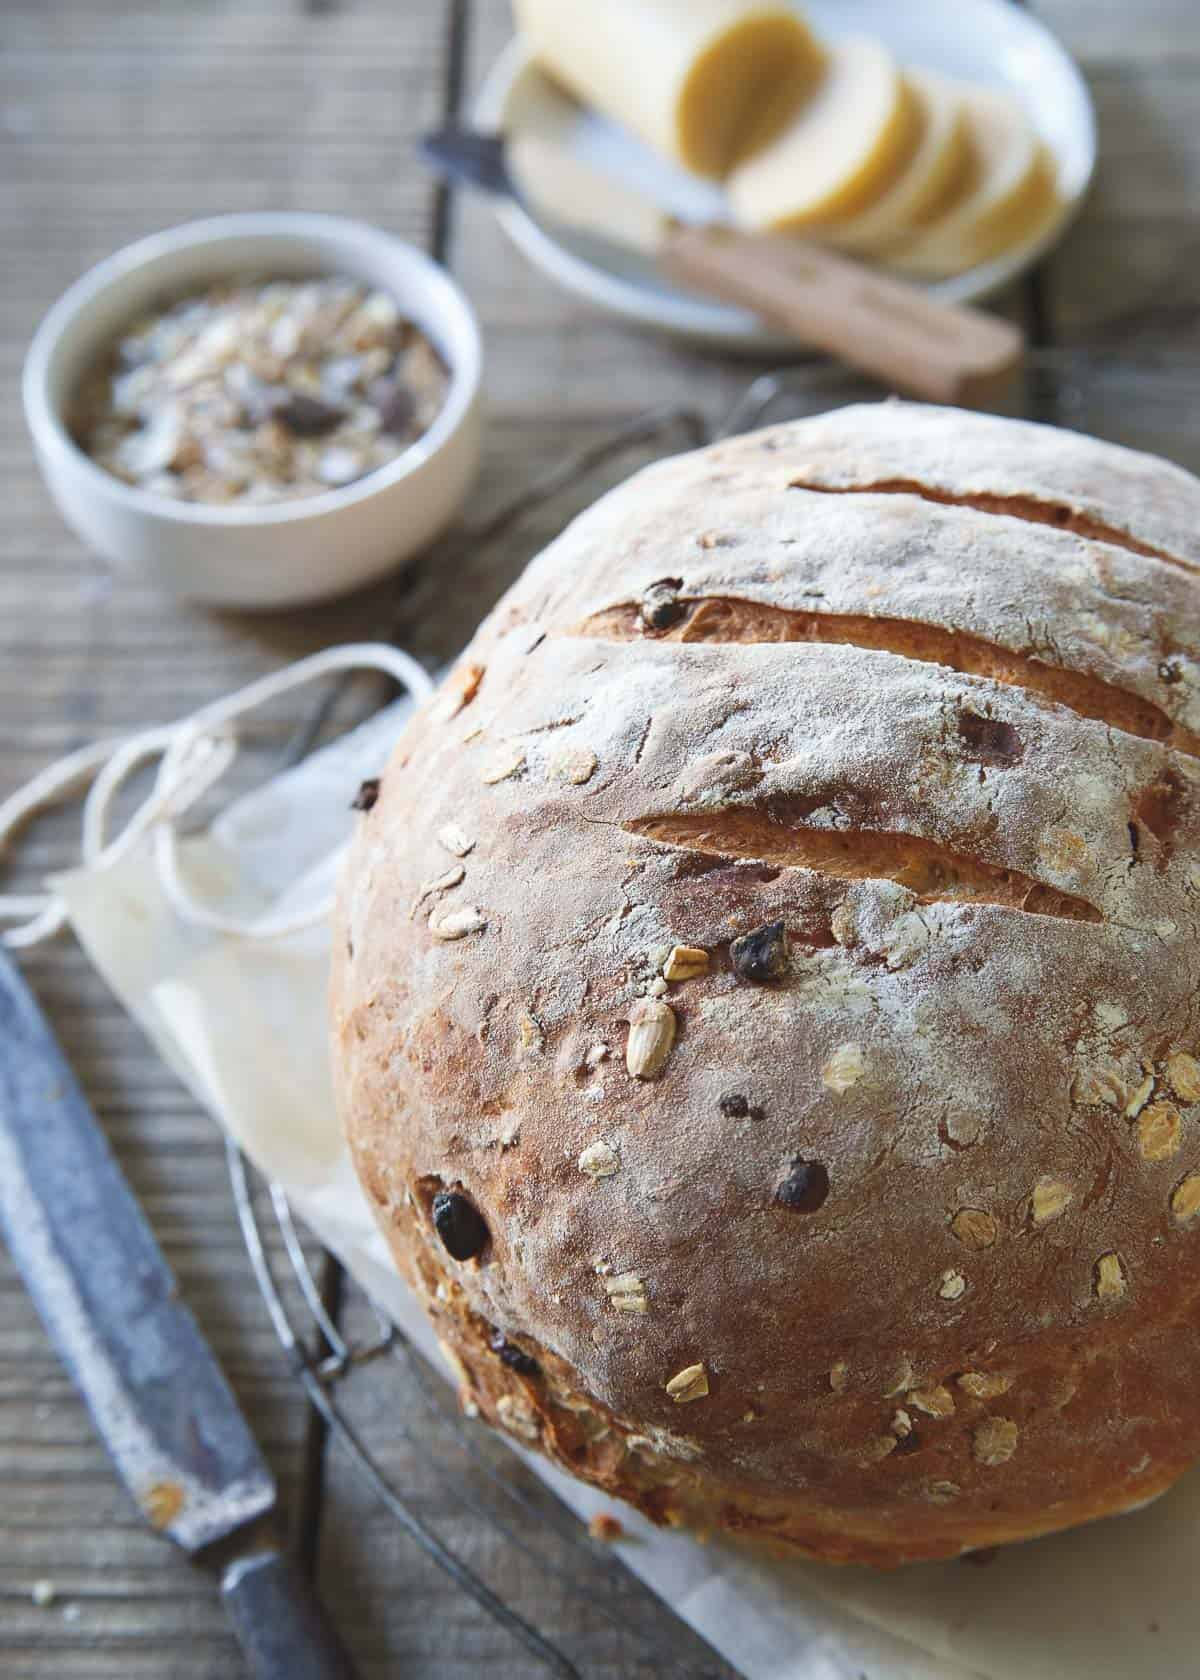 Nothing beats the smell of freshly baked bread coming out of the oven. This hearty muesli bread is begging to be slathered with some butter and enjoyed warm!